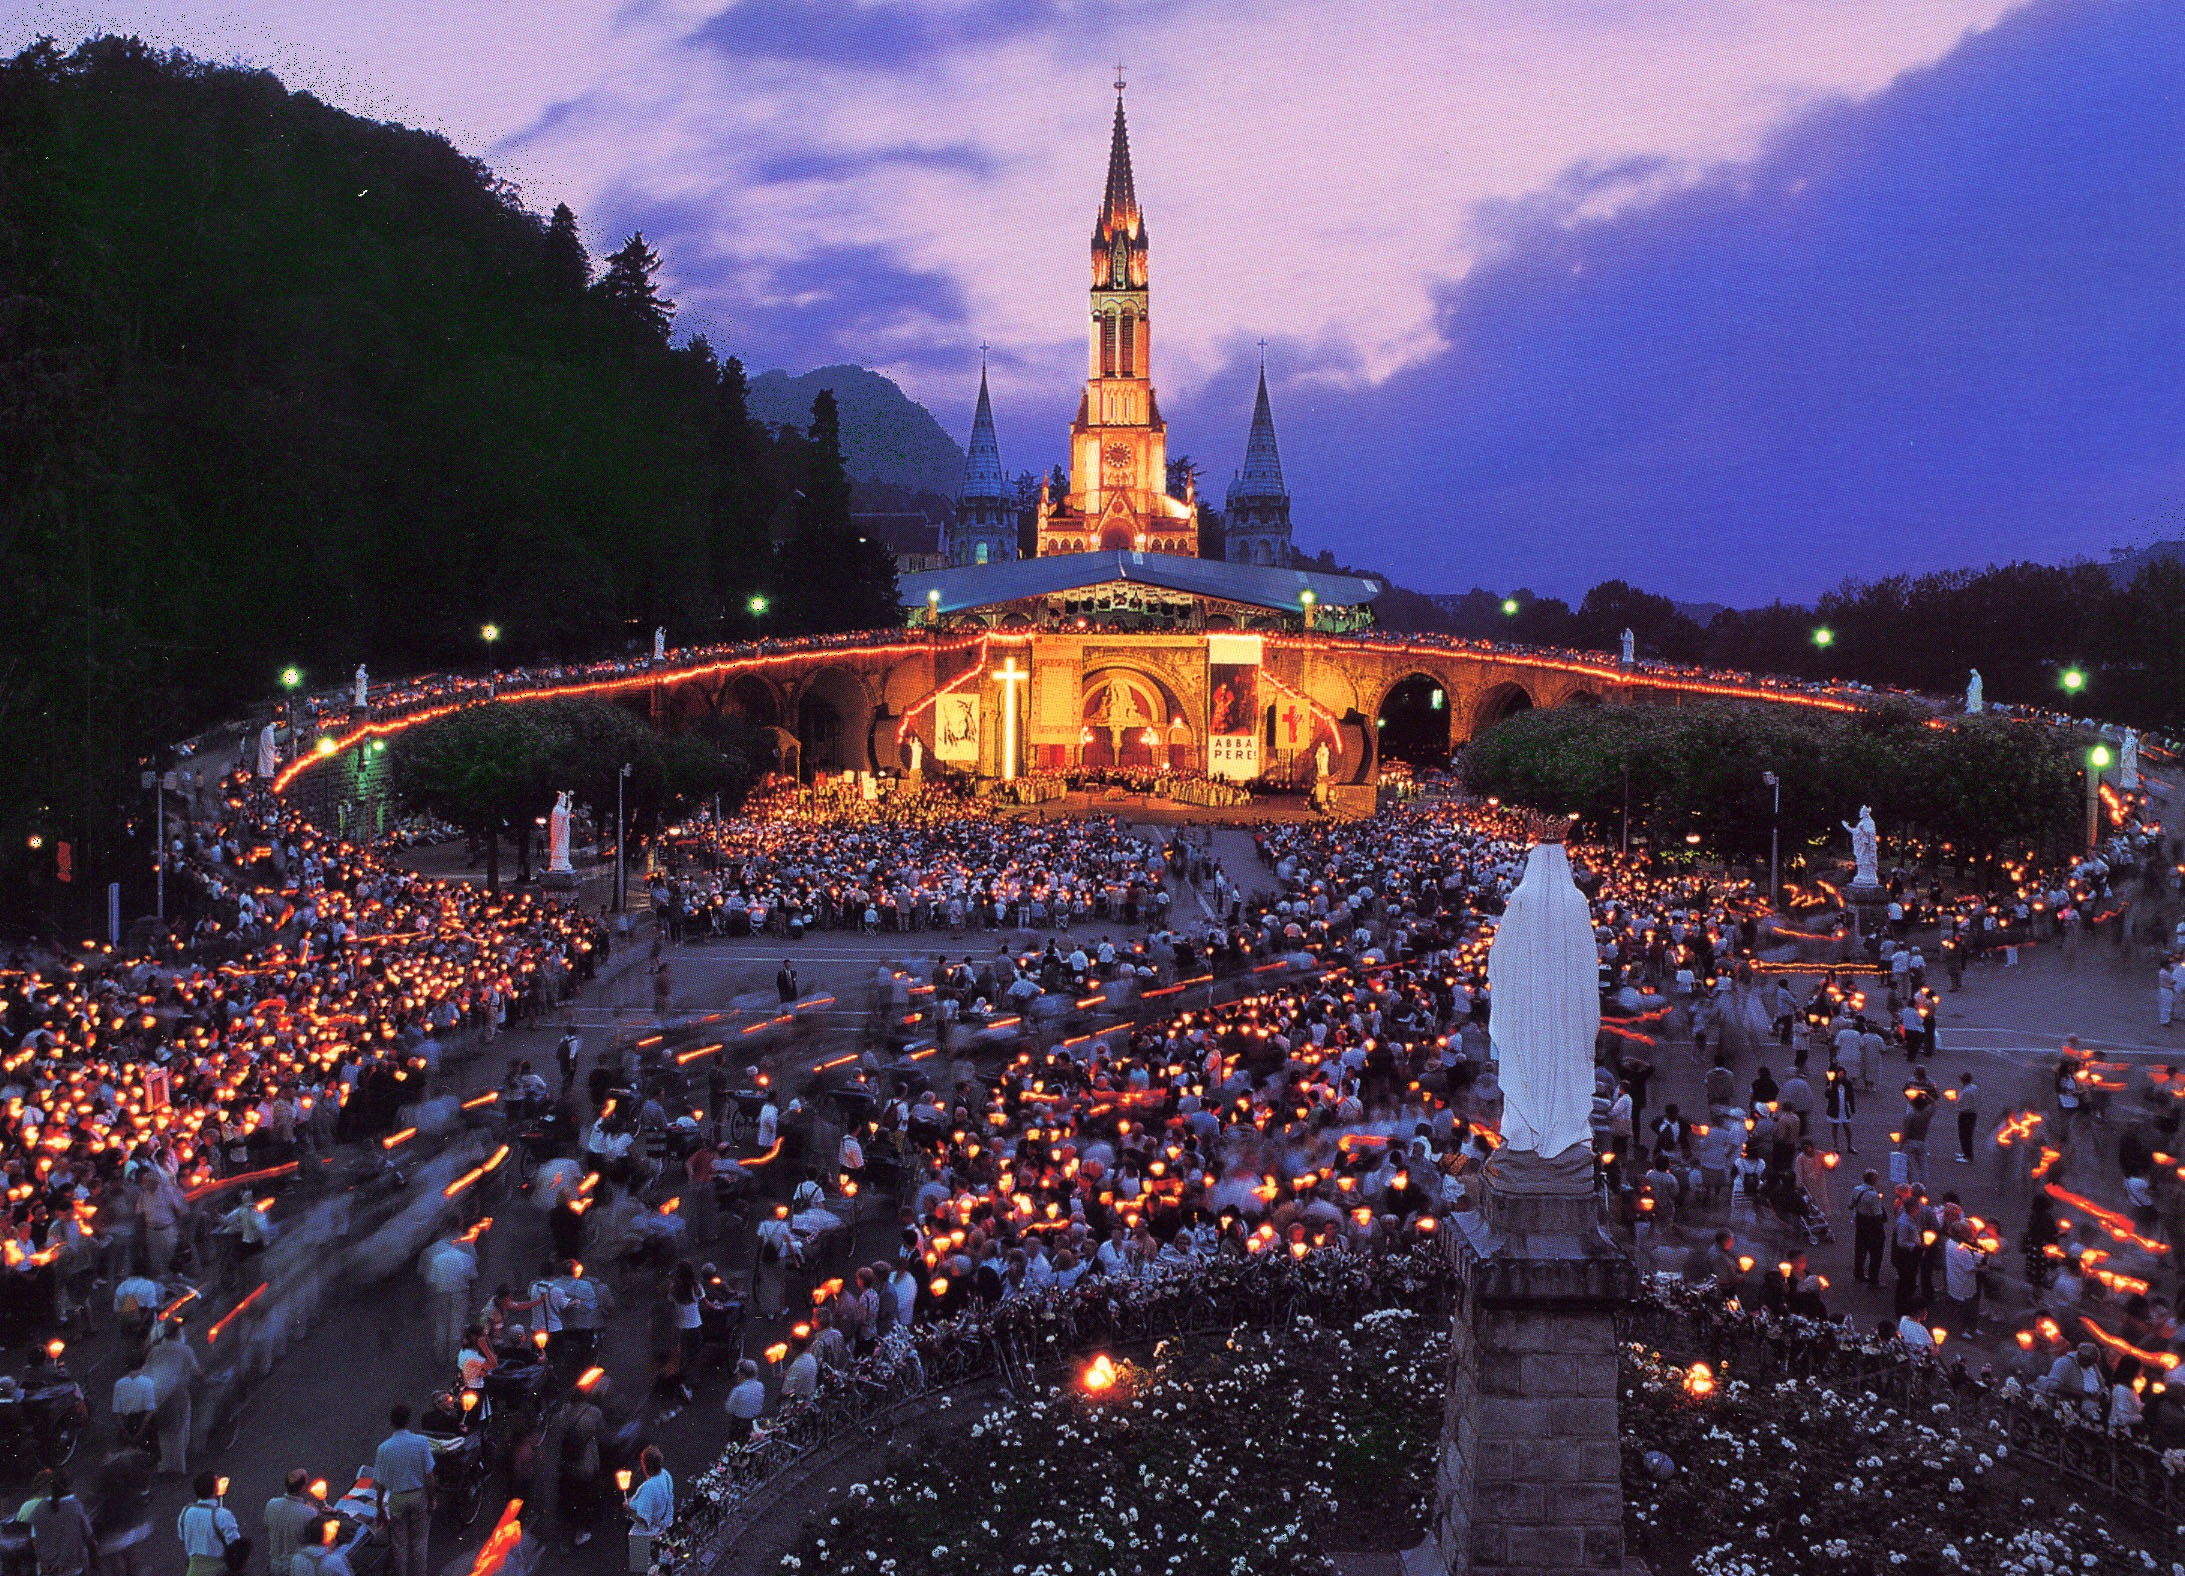 Sanctuary of Our Lady of Lourdes, France wallpaper | Catholic Quotations